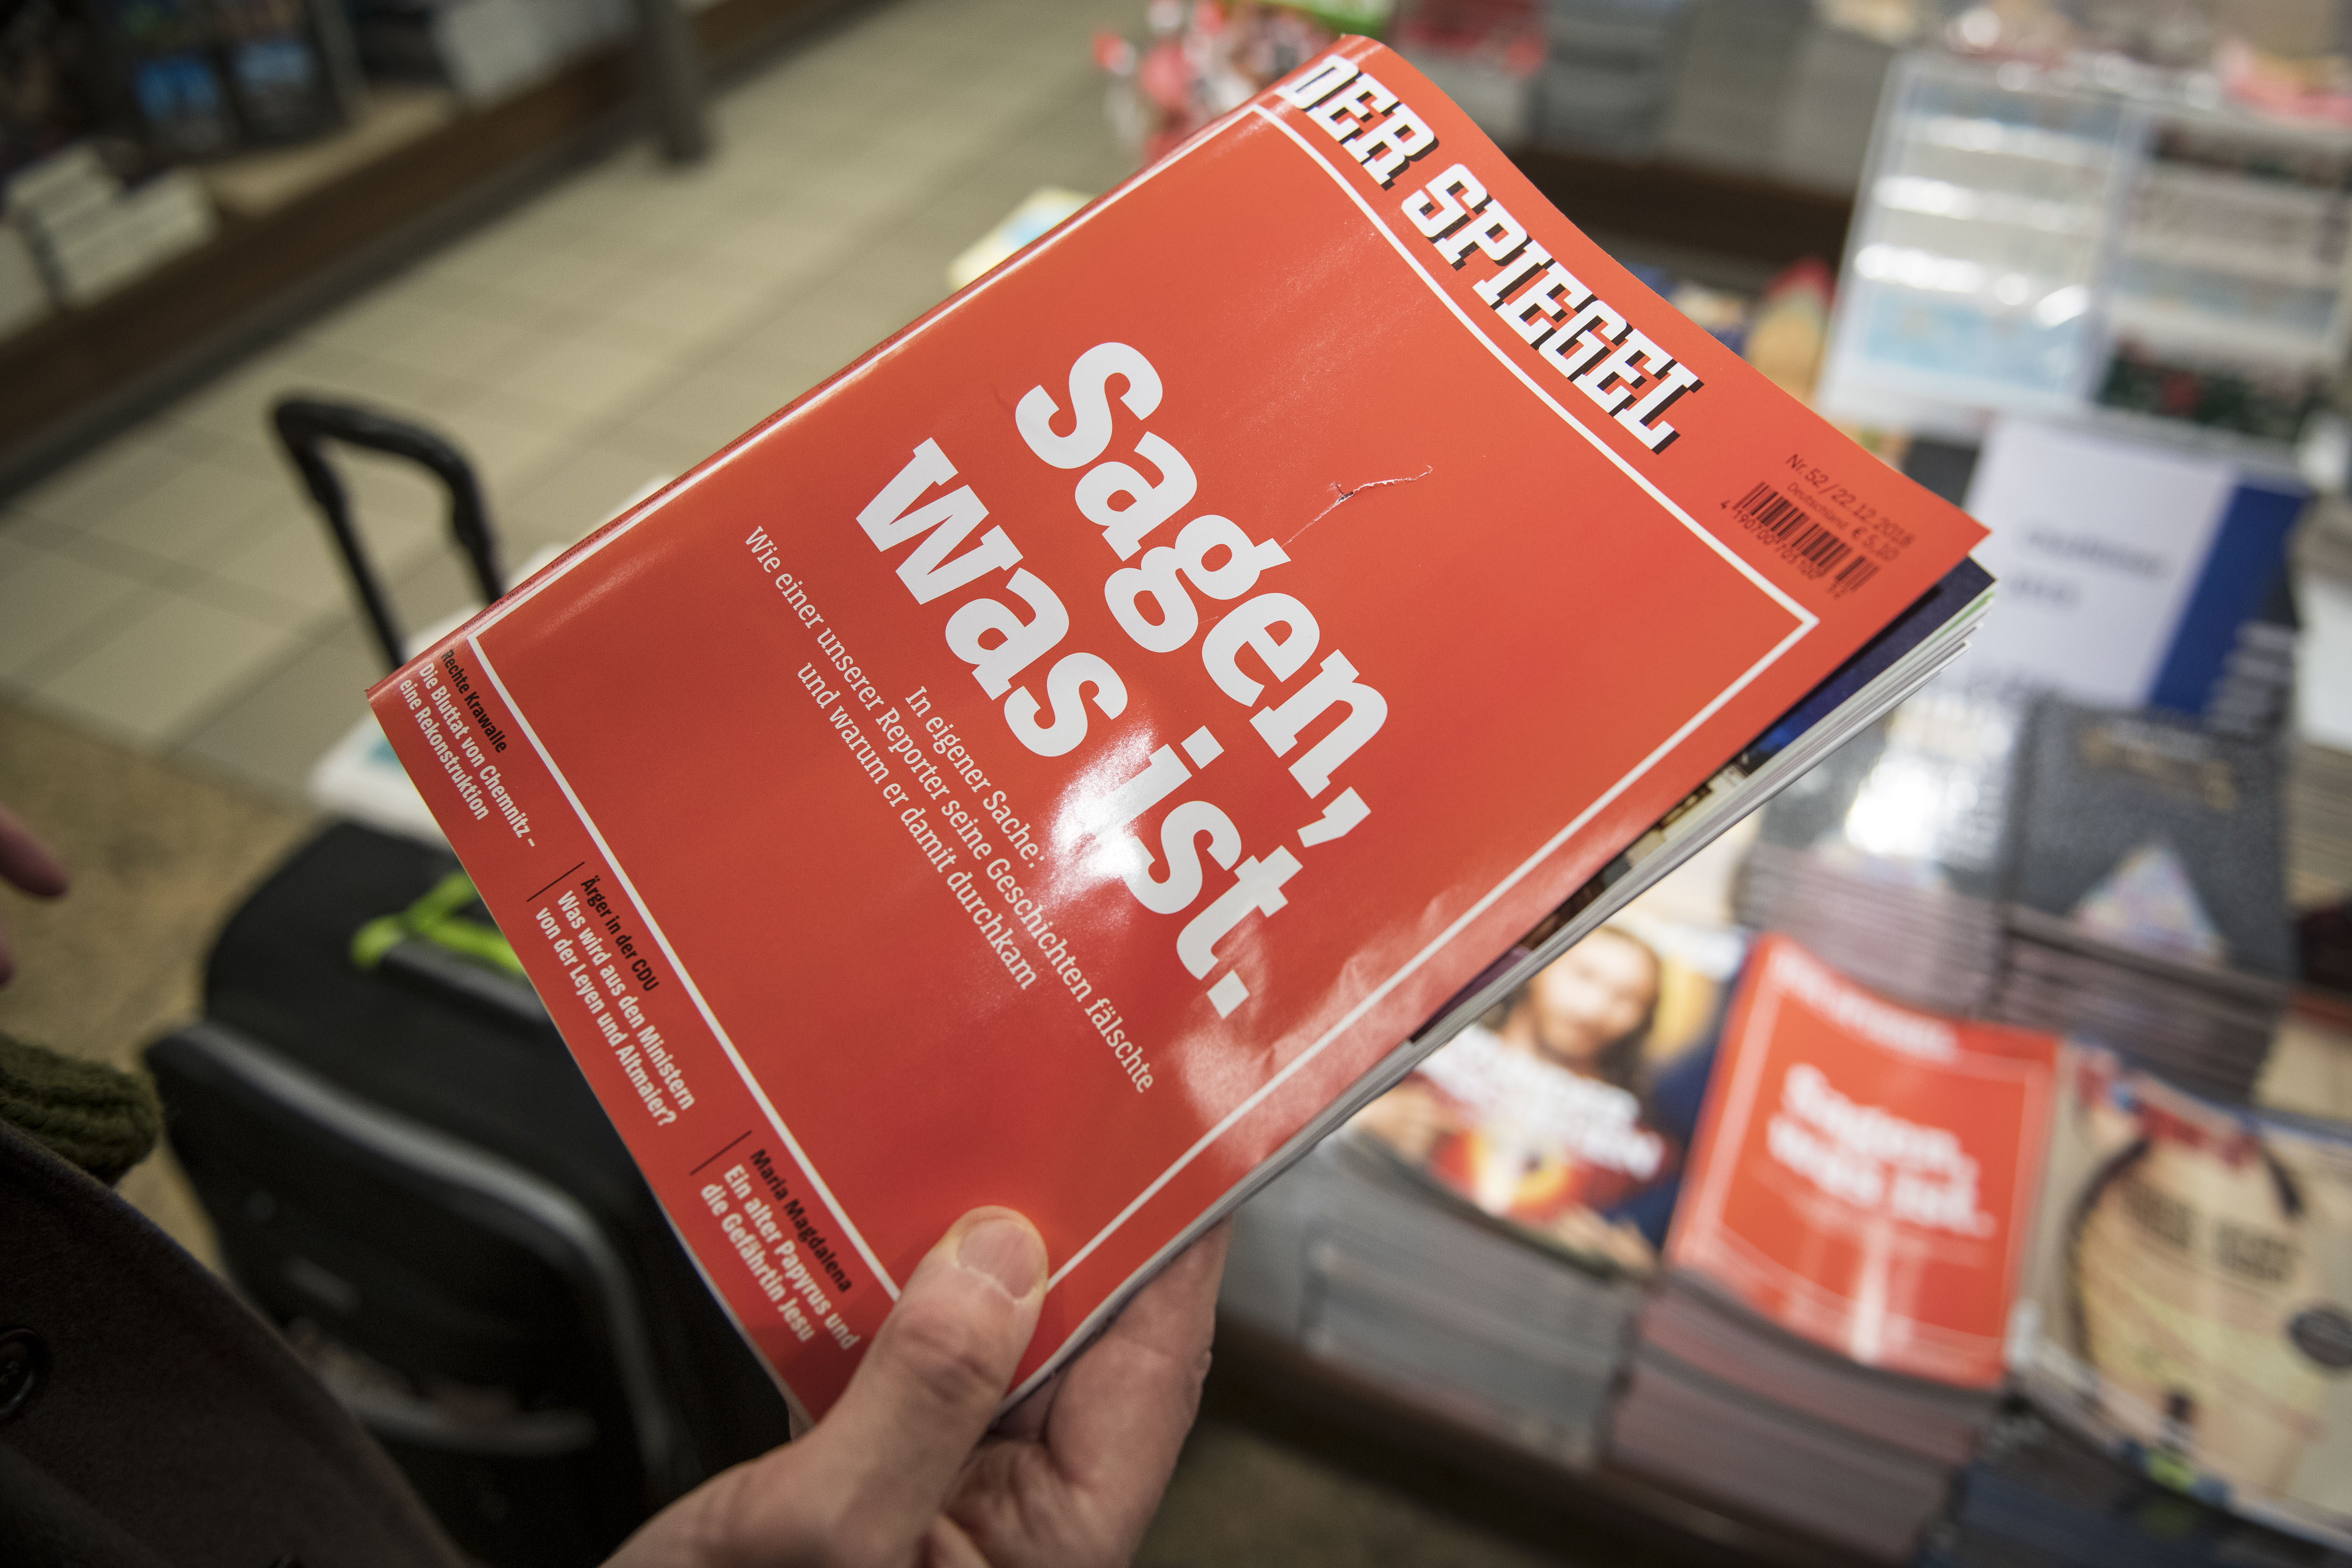 A man holds the latest issue of German newsweekly Der Spiegel with a cover page that reads:  To say, what is  at a kiosk in Cologne, Germany on Dec. 22, 2018.